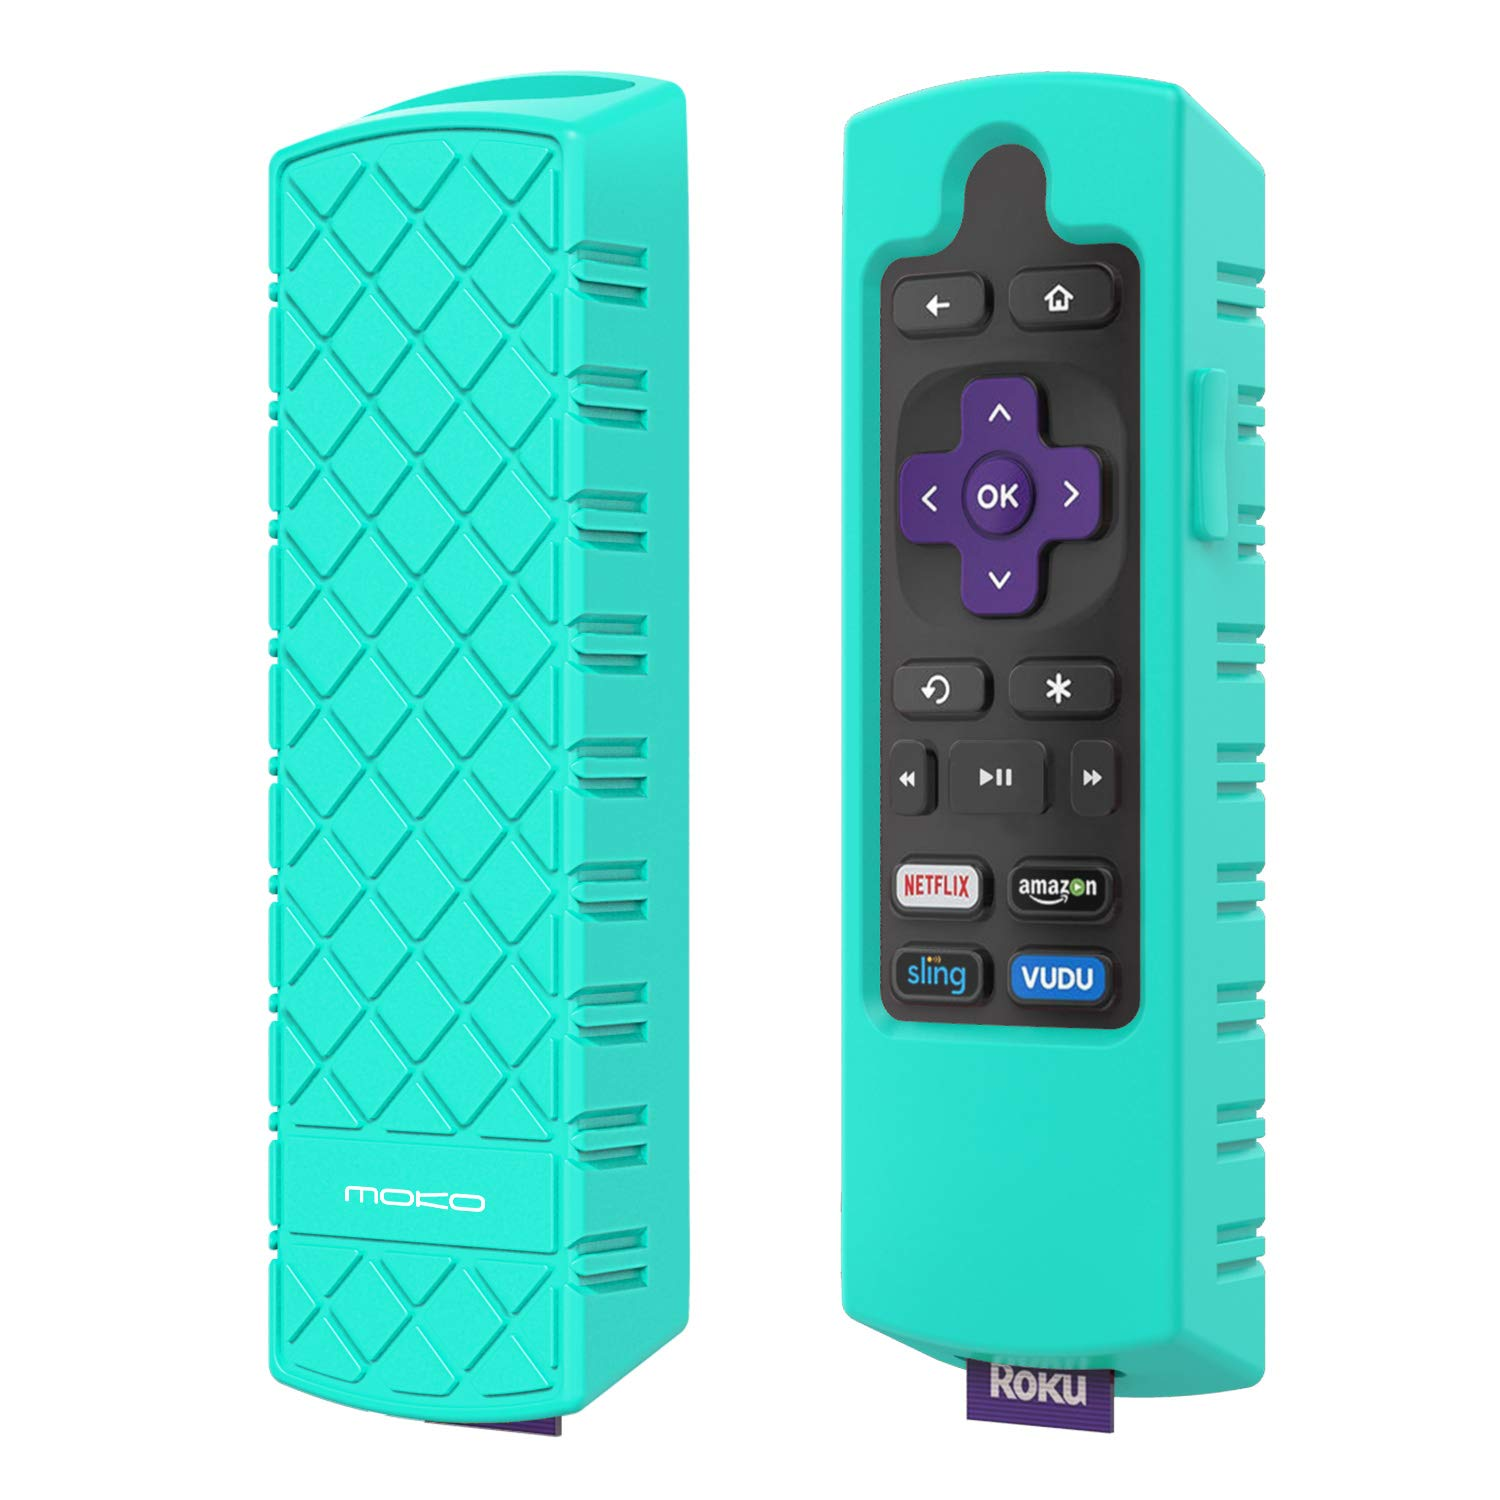 MoKo Protective Case Replacement for Roku Express/Streaming Stick Remote, Non-Slip Silicone Cover Fit Roku Express(3900)/Express+(3910), Streaming Stick(3800)/Stick+(3810) Remote Control - Blue PartialUpdate